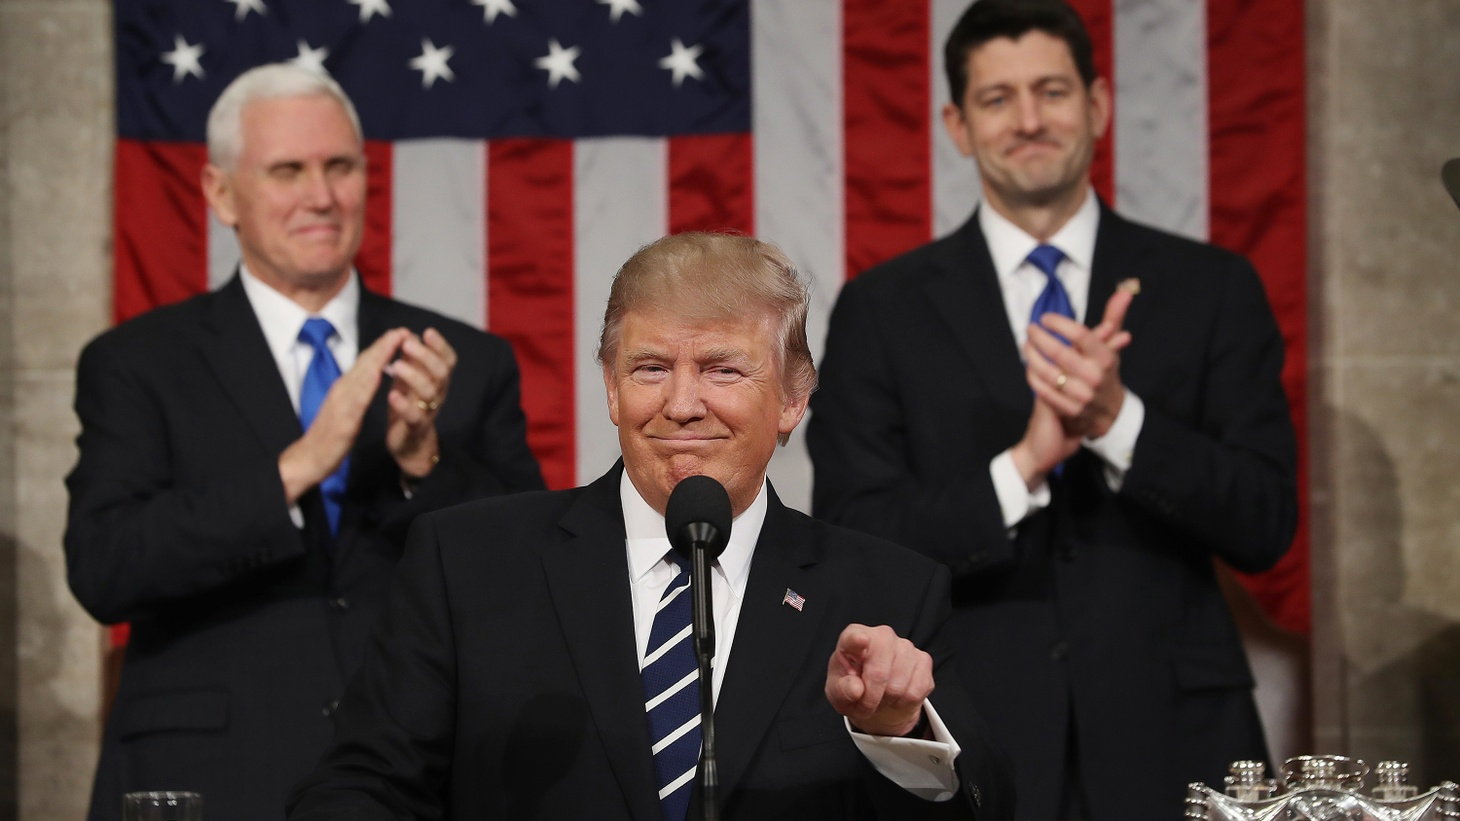 President Trump may have had a familiar message last night in his first address to a Joint Meeting of Congress, but his tone and his delivery were something new.